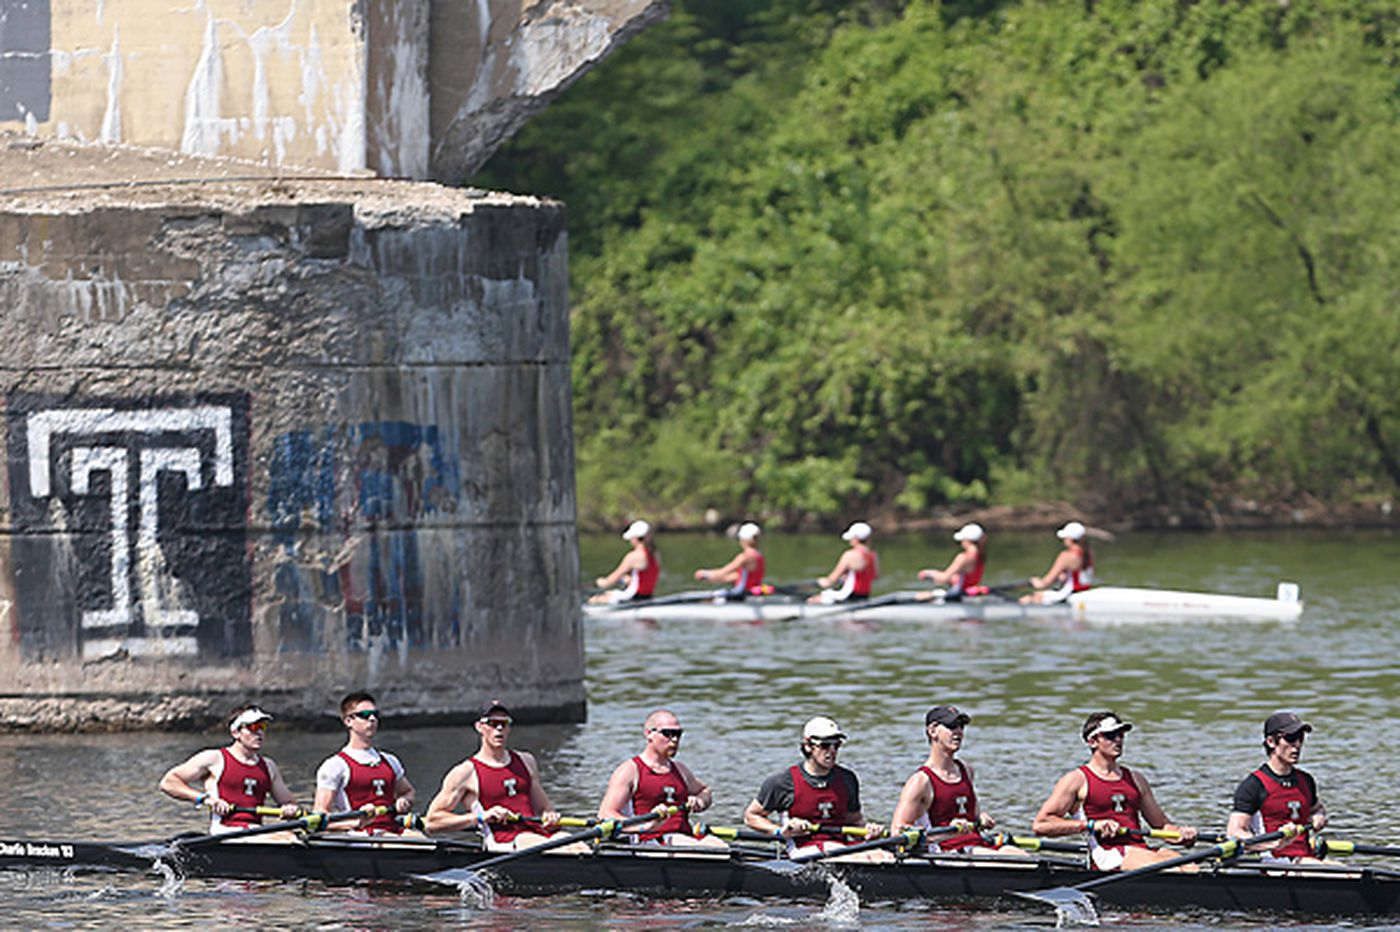 Temple rowers have found new life